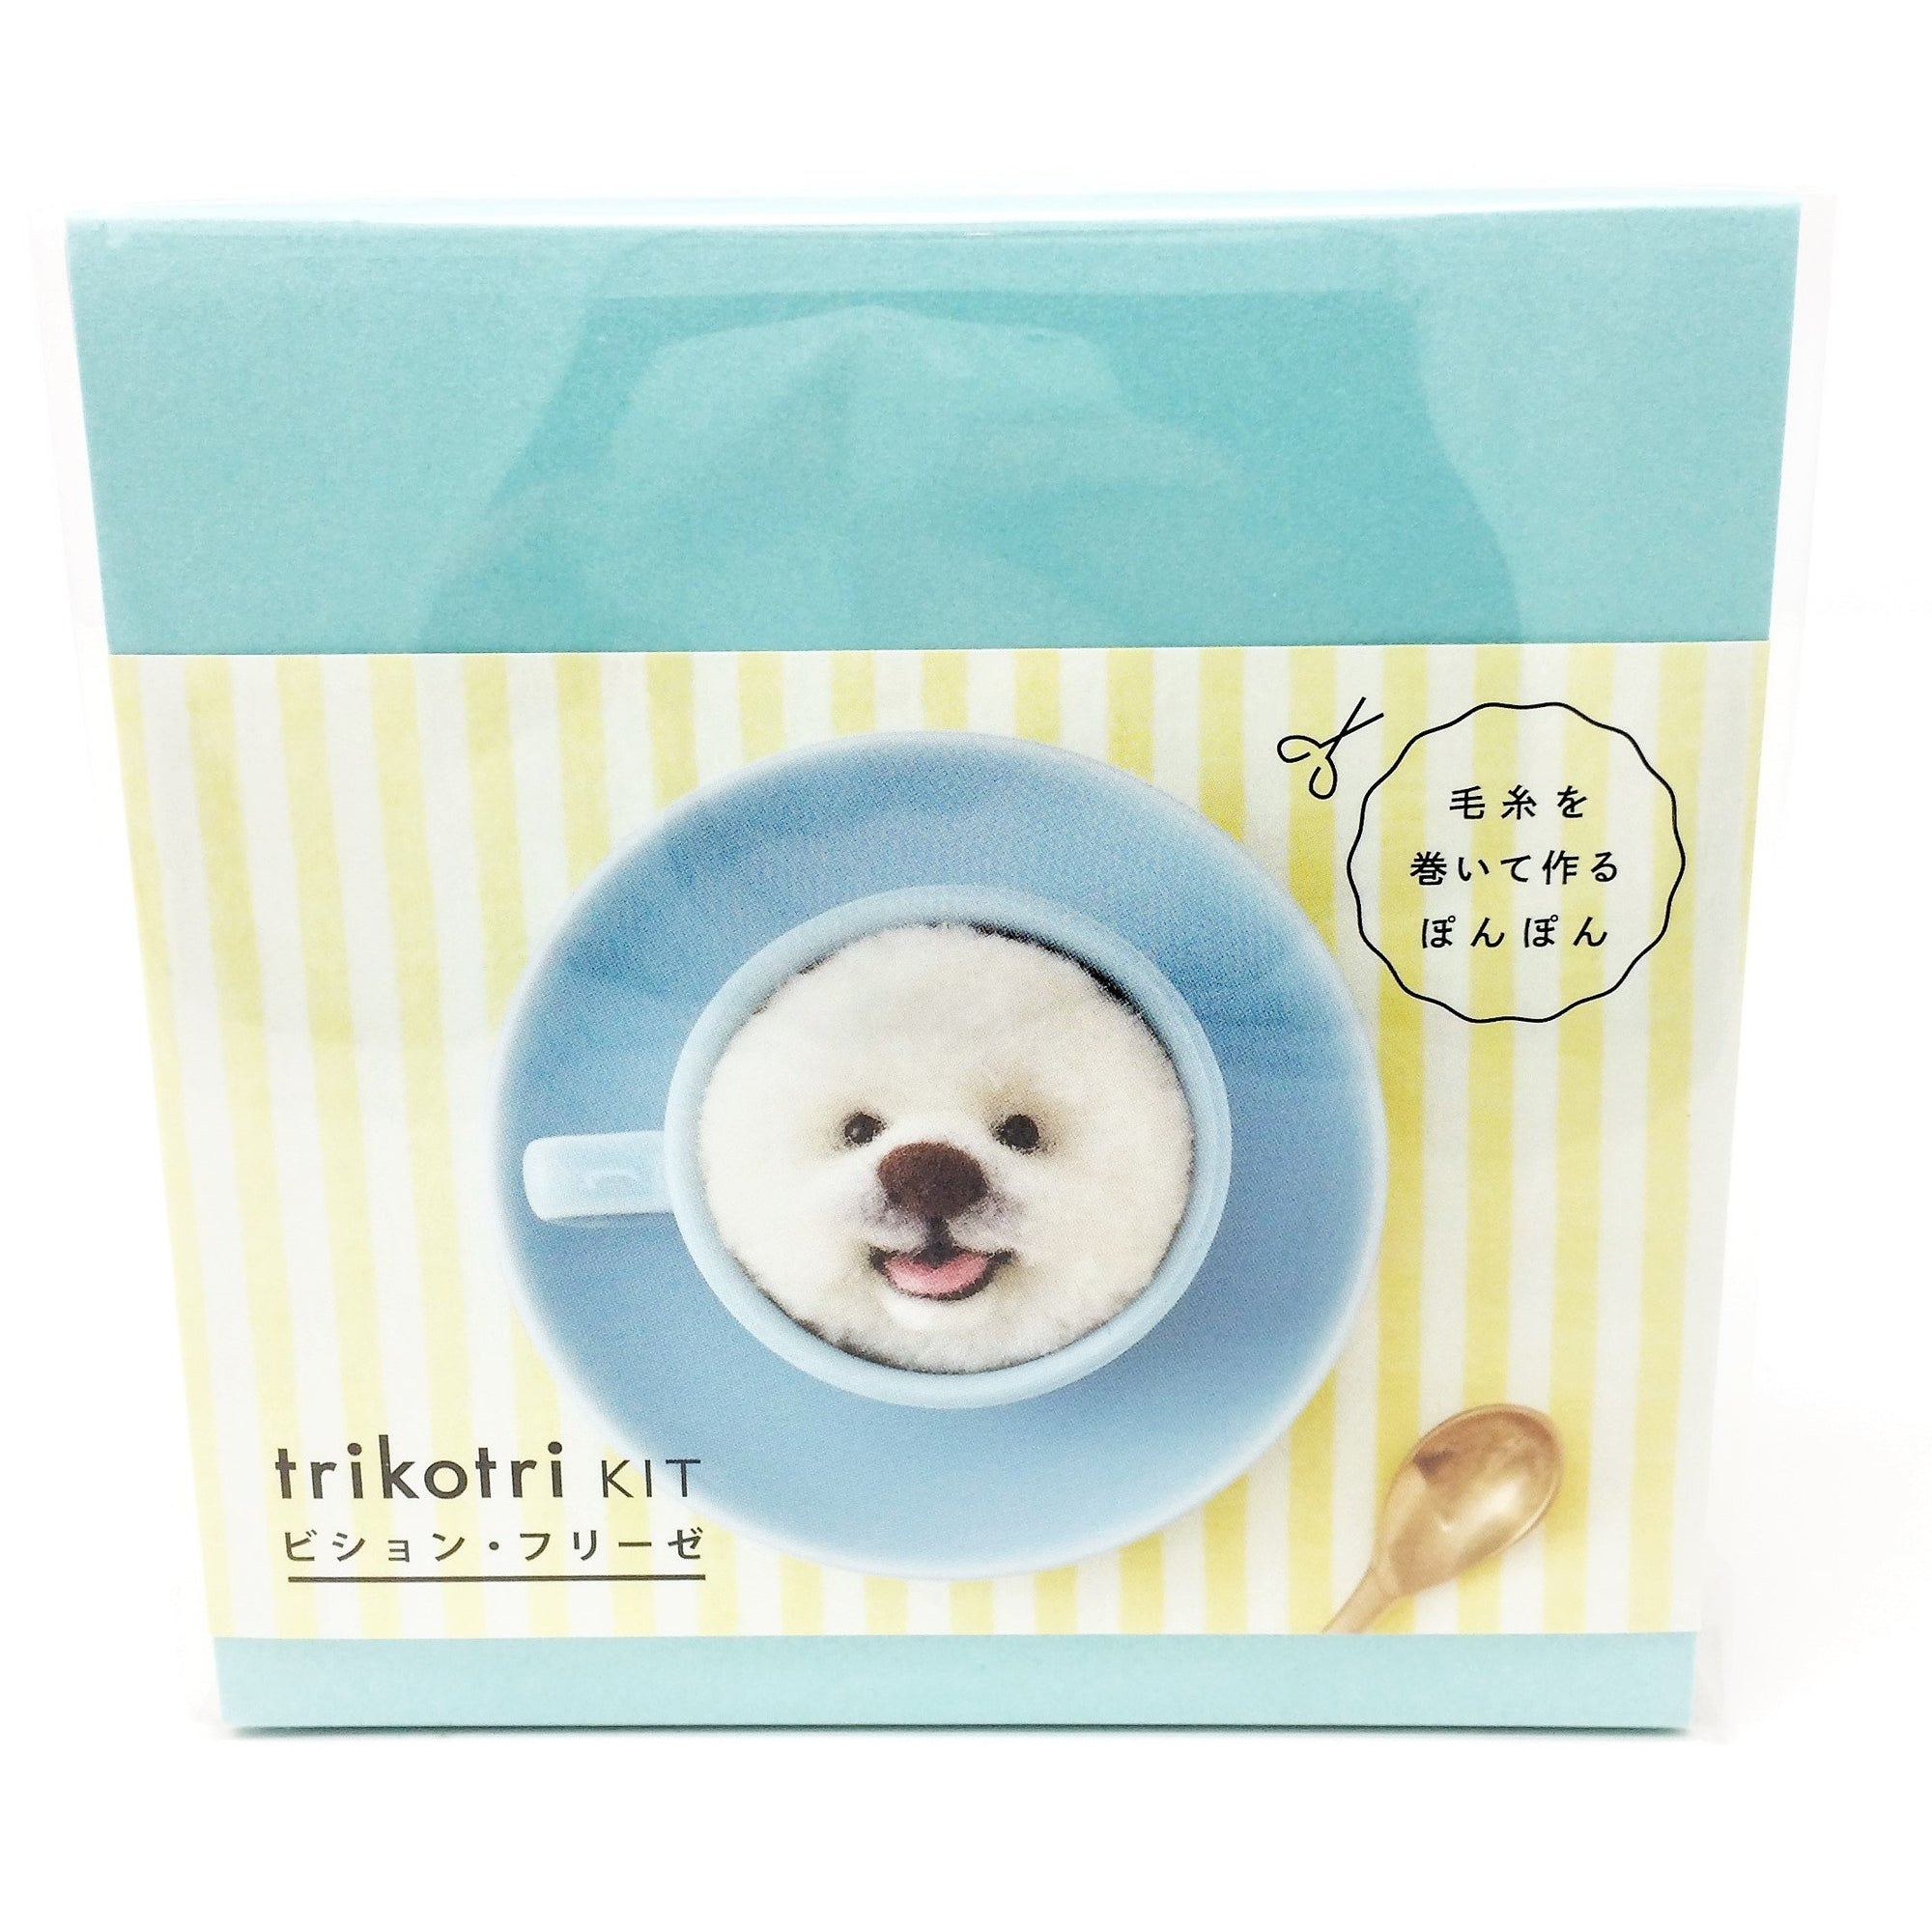 Trikotri KIT -  Bichon Frise Pom Pom Kit (English)